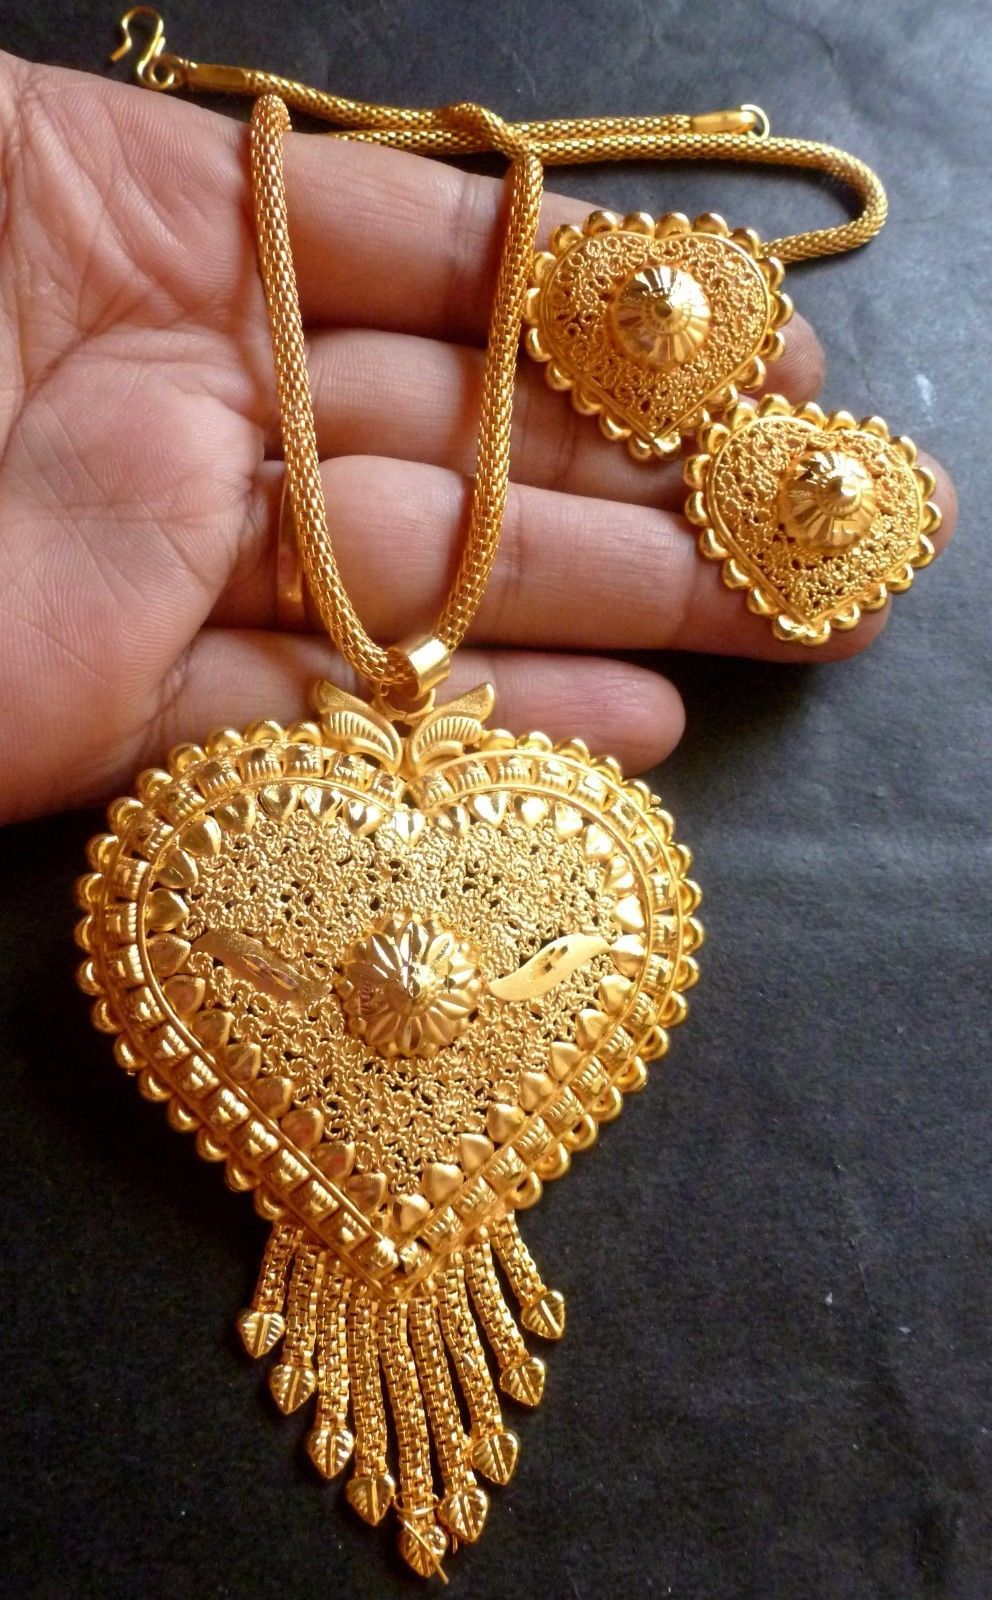 Indian k gold plated bridal necklace chain uupendant earrings